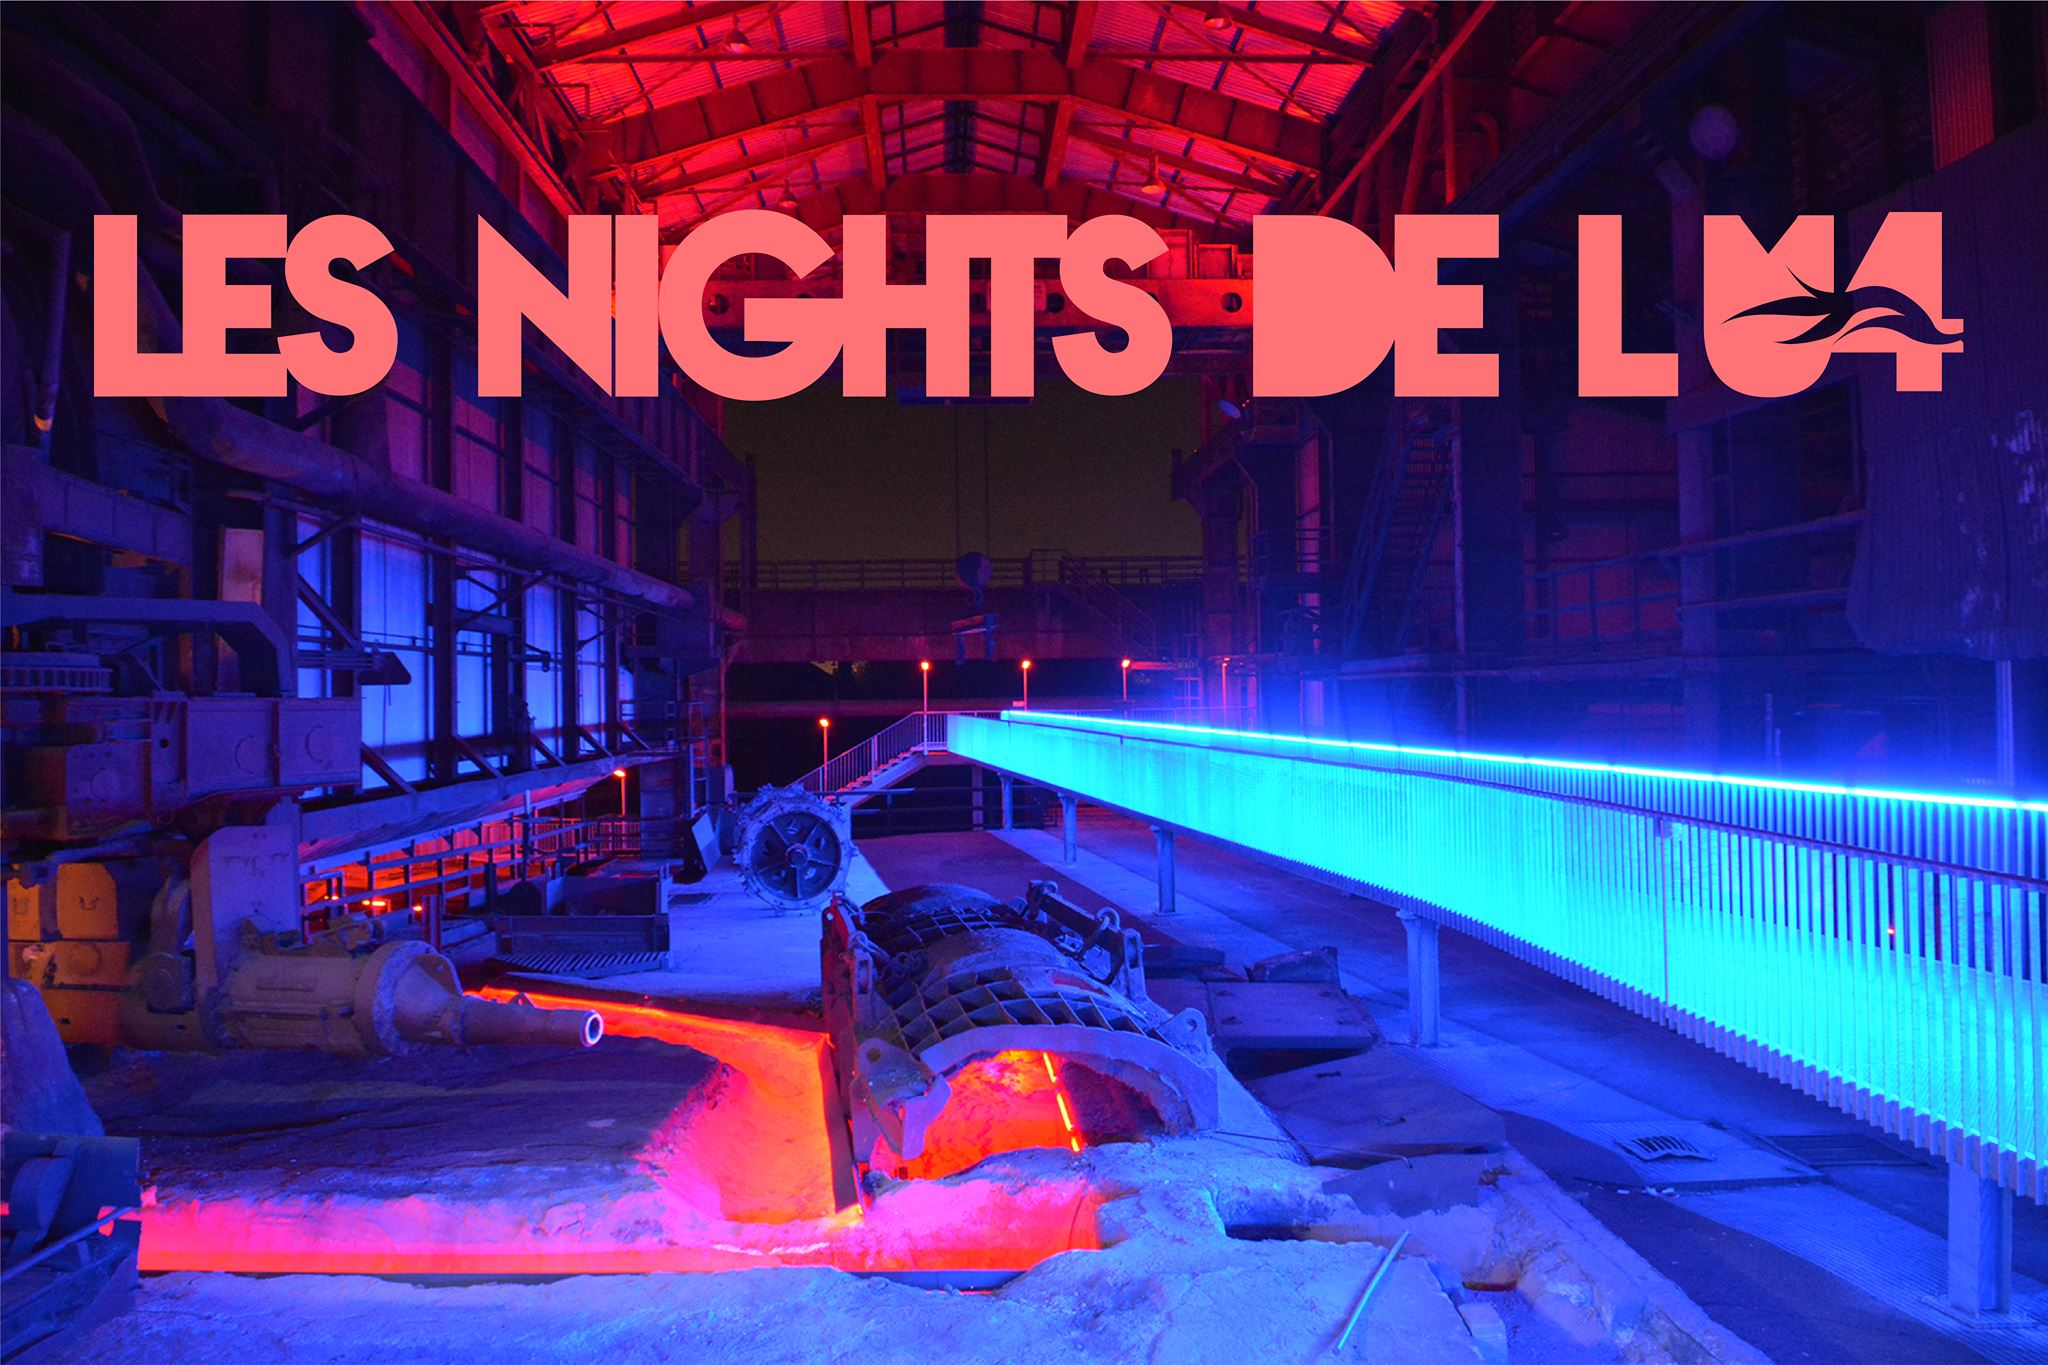 Les Nights de l'U4